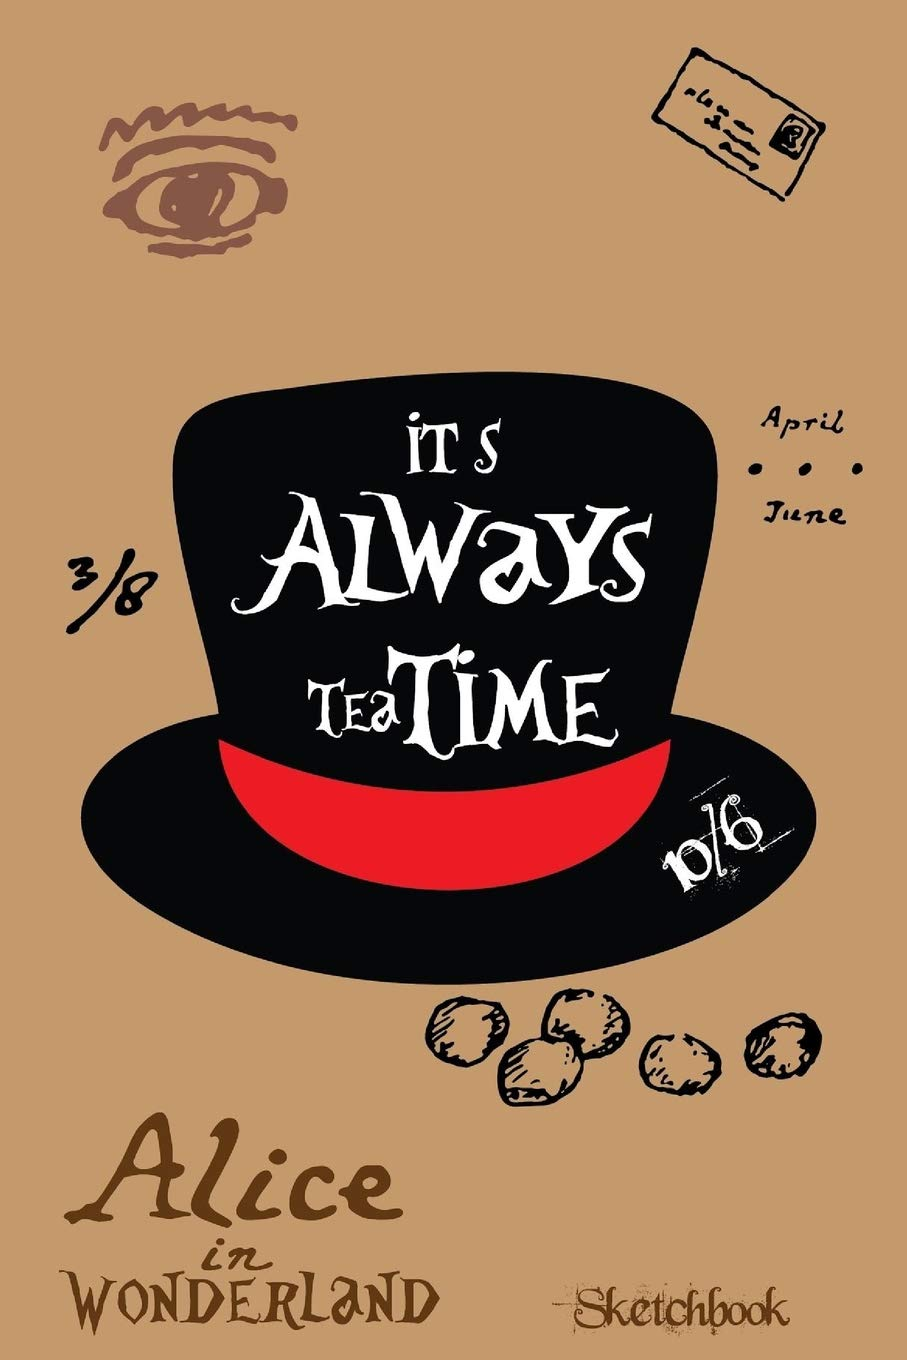 alice in wonderland quotes sketchbook mad hatter its always tea time 05 mm dot grid sketchbook journal doodle diary for creative boys girls 108 pages size 6 wide x 9 high volume 2